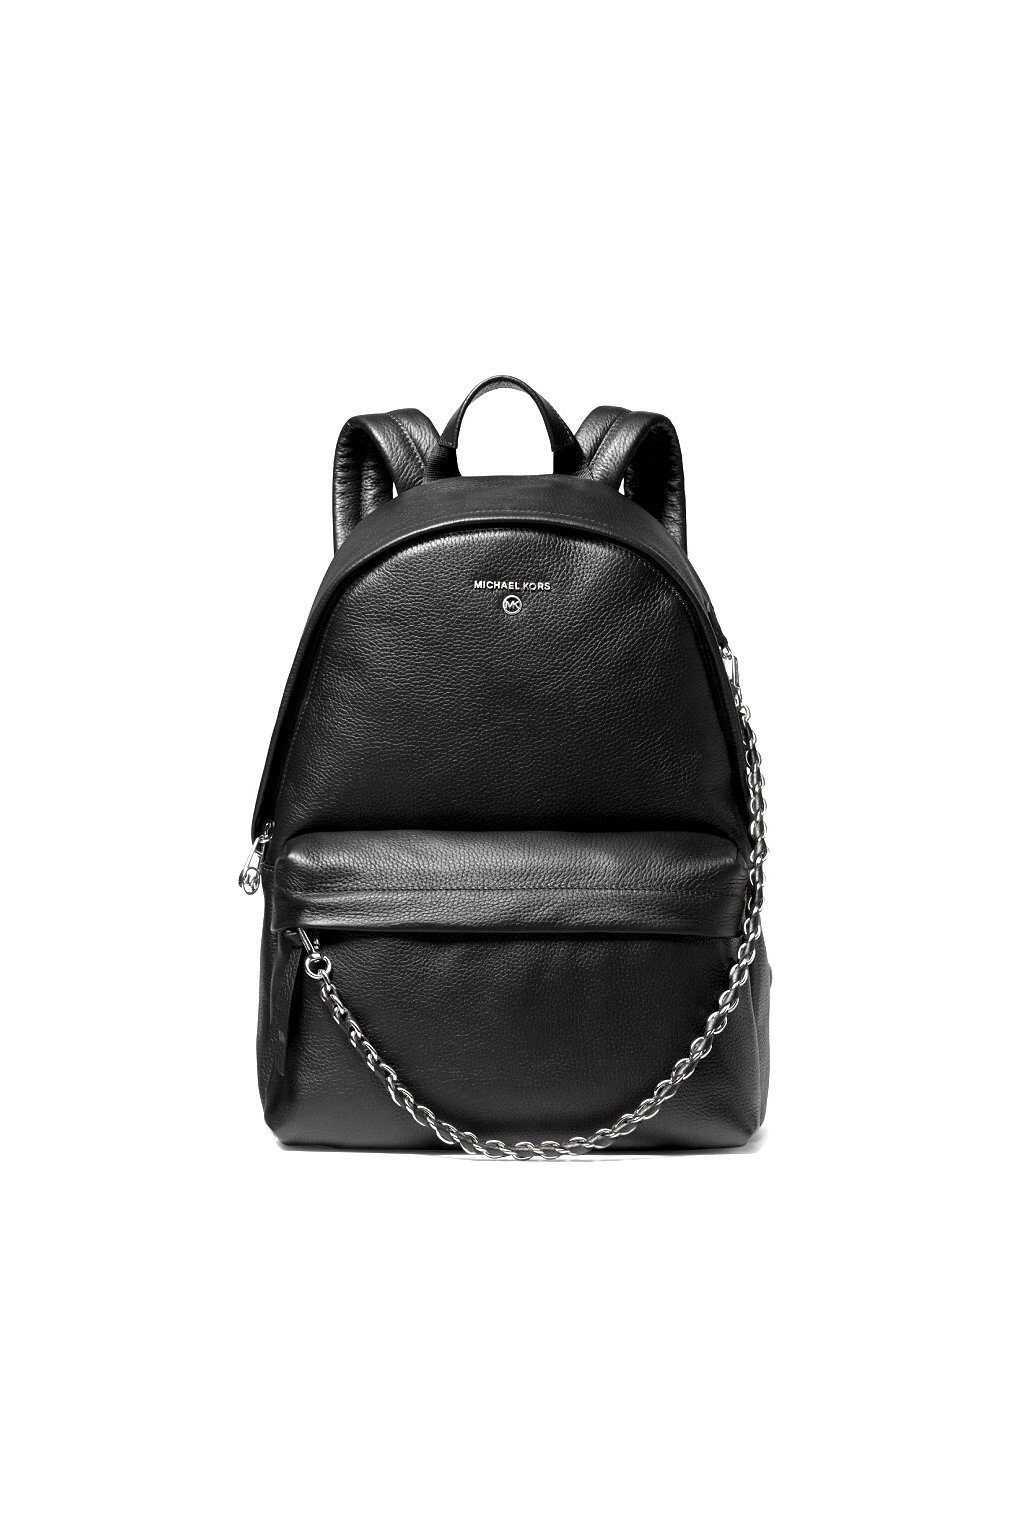 30T0S04B1L Dámský batoh Michael Kors Slater Medium Backpack Leather černý